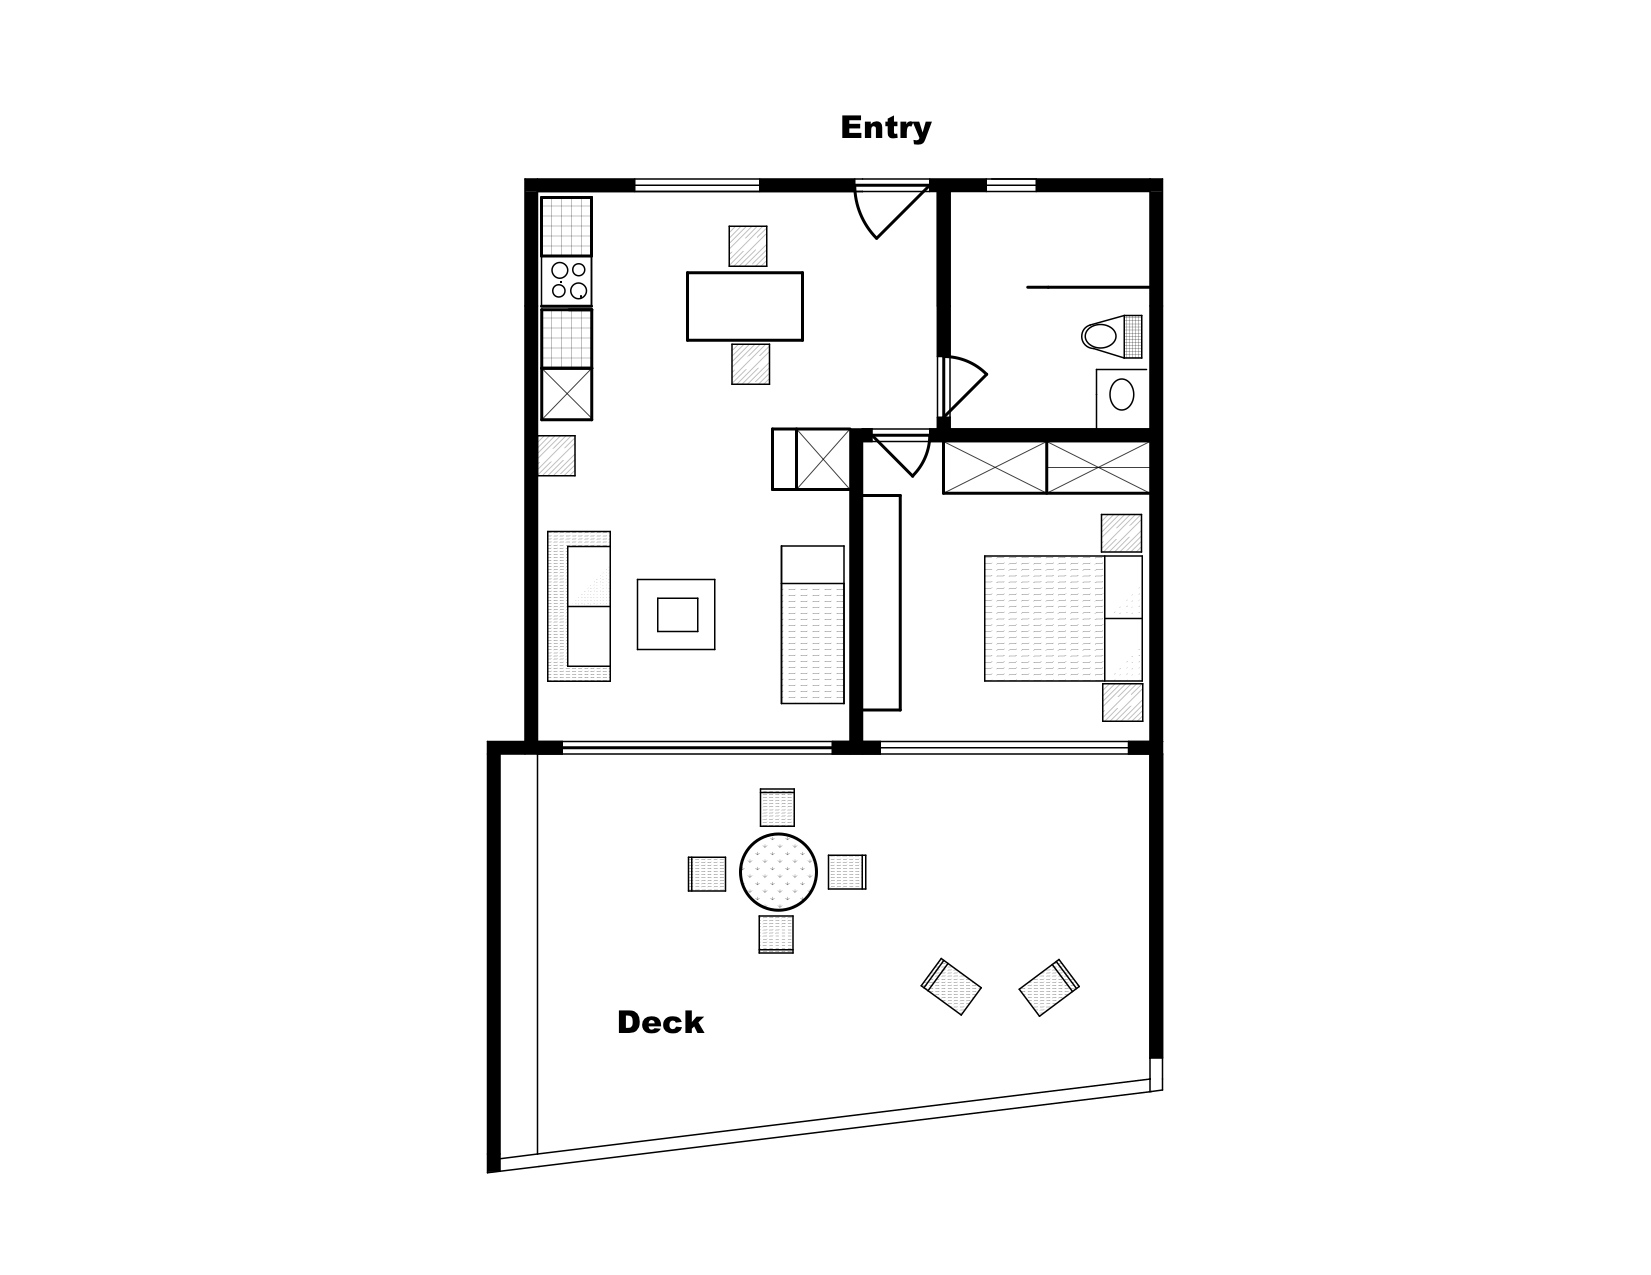 Floor plan of Alegria. The private, covered view deck/terrace is almost as large as bedroom and living/dining/kitchen areas combined. The concrete/sod roof extends over almost the entire deck.